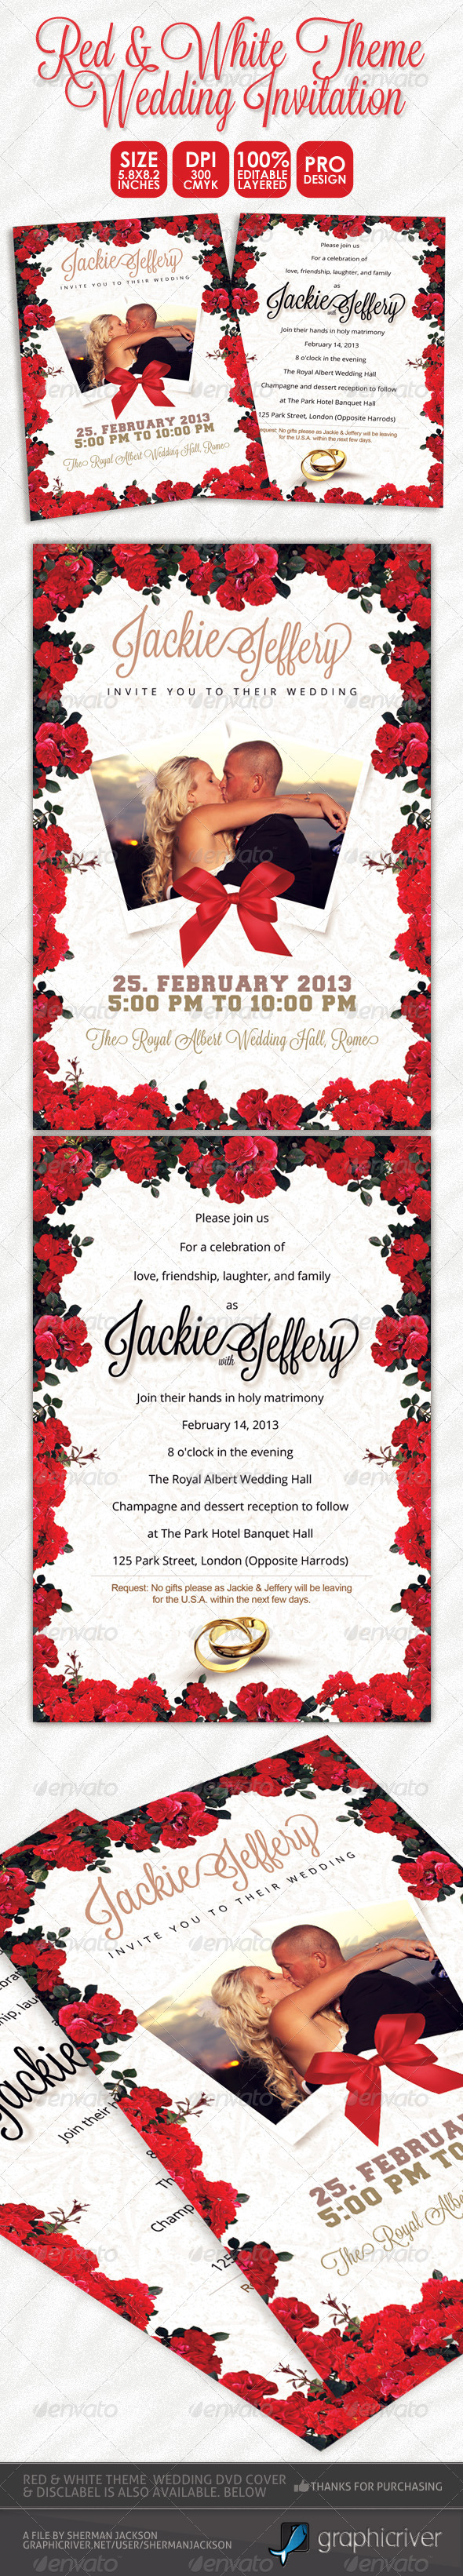 GraphicRiver Red & White Theme Wedding Invitation Card 3884540